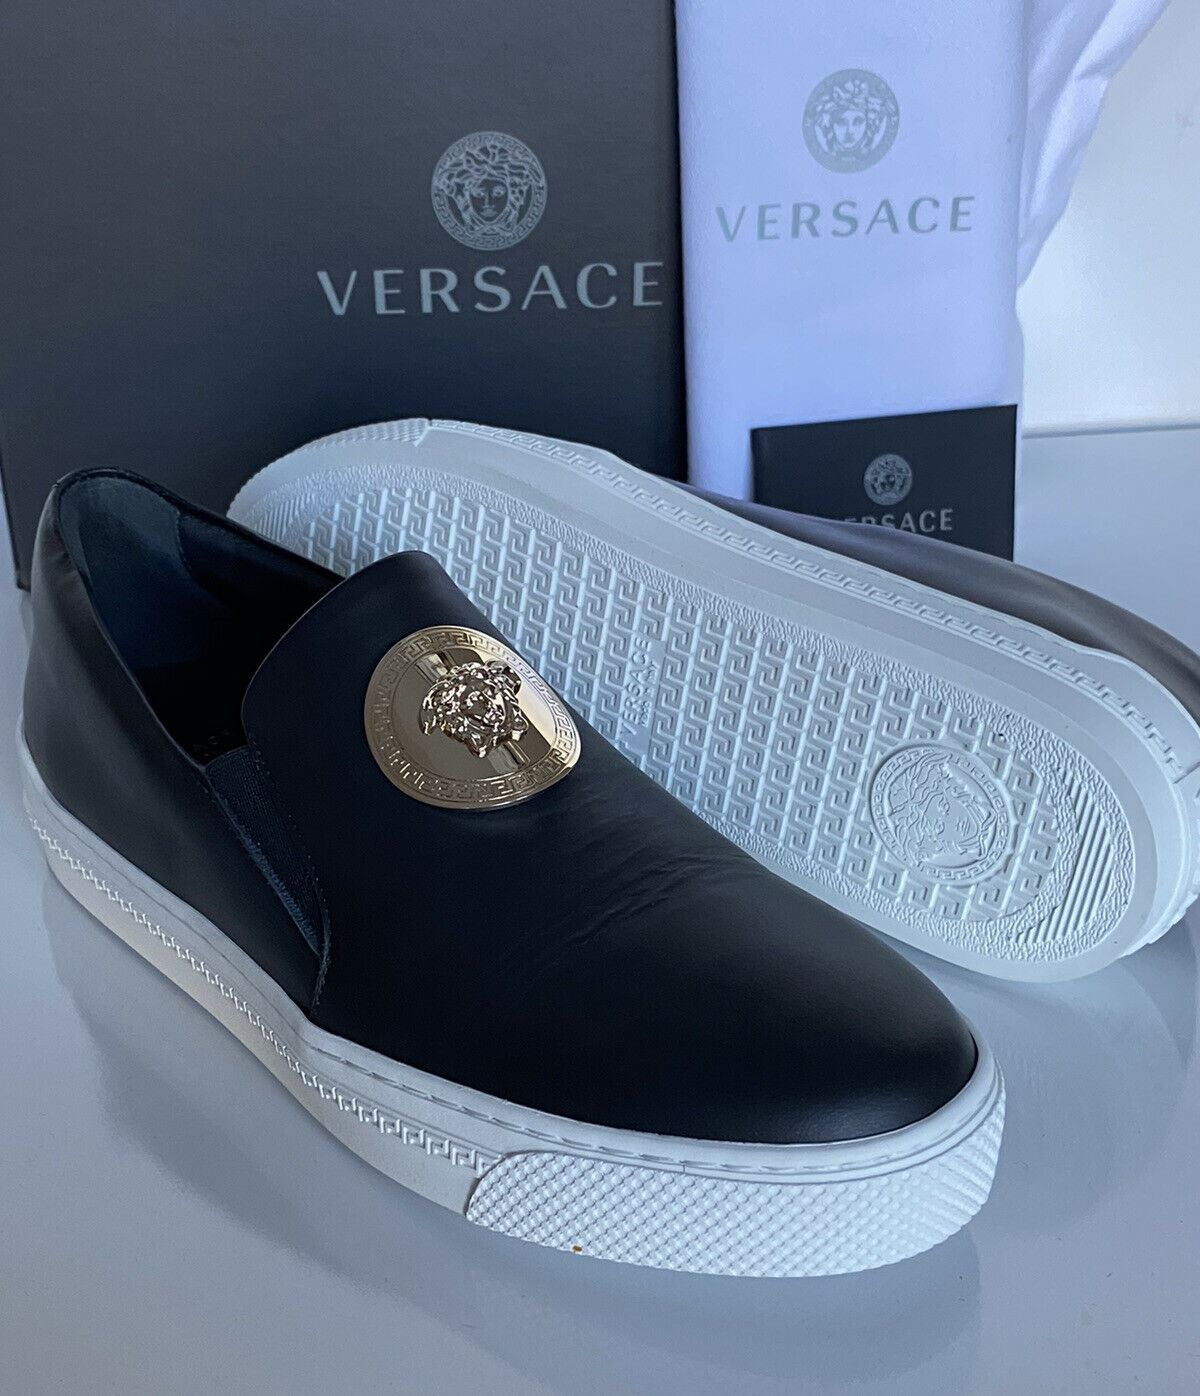 NIB VERSACE Slip-on Womens Black Leather Sneakers SIZE 9.5 US (39.5 EU) Italy